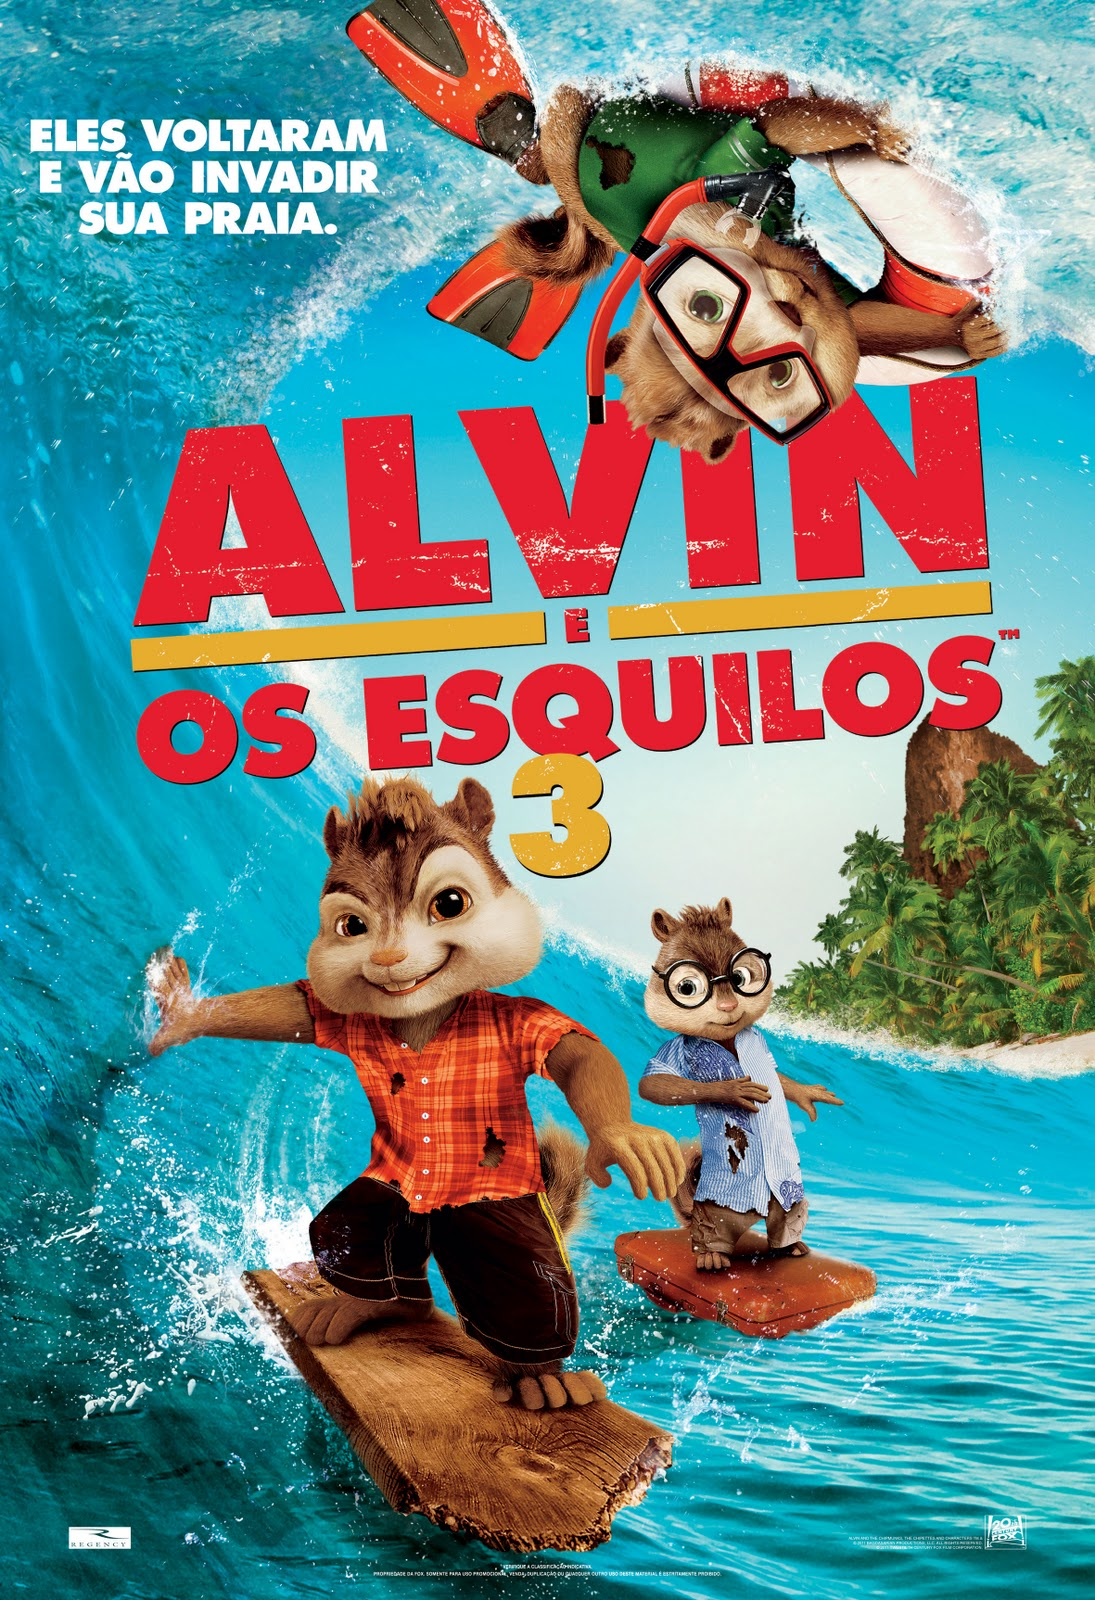 Alvin e os Esquilos 3 Download